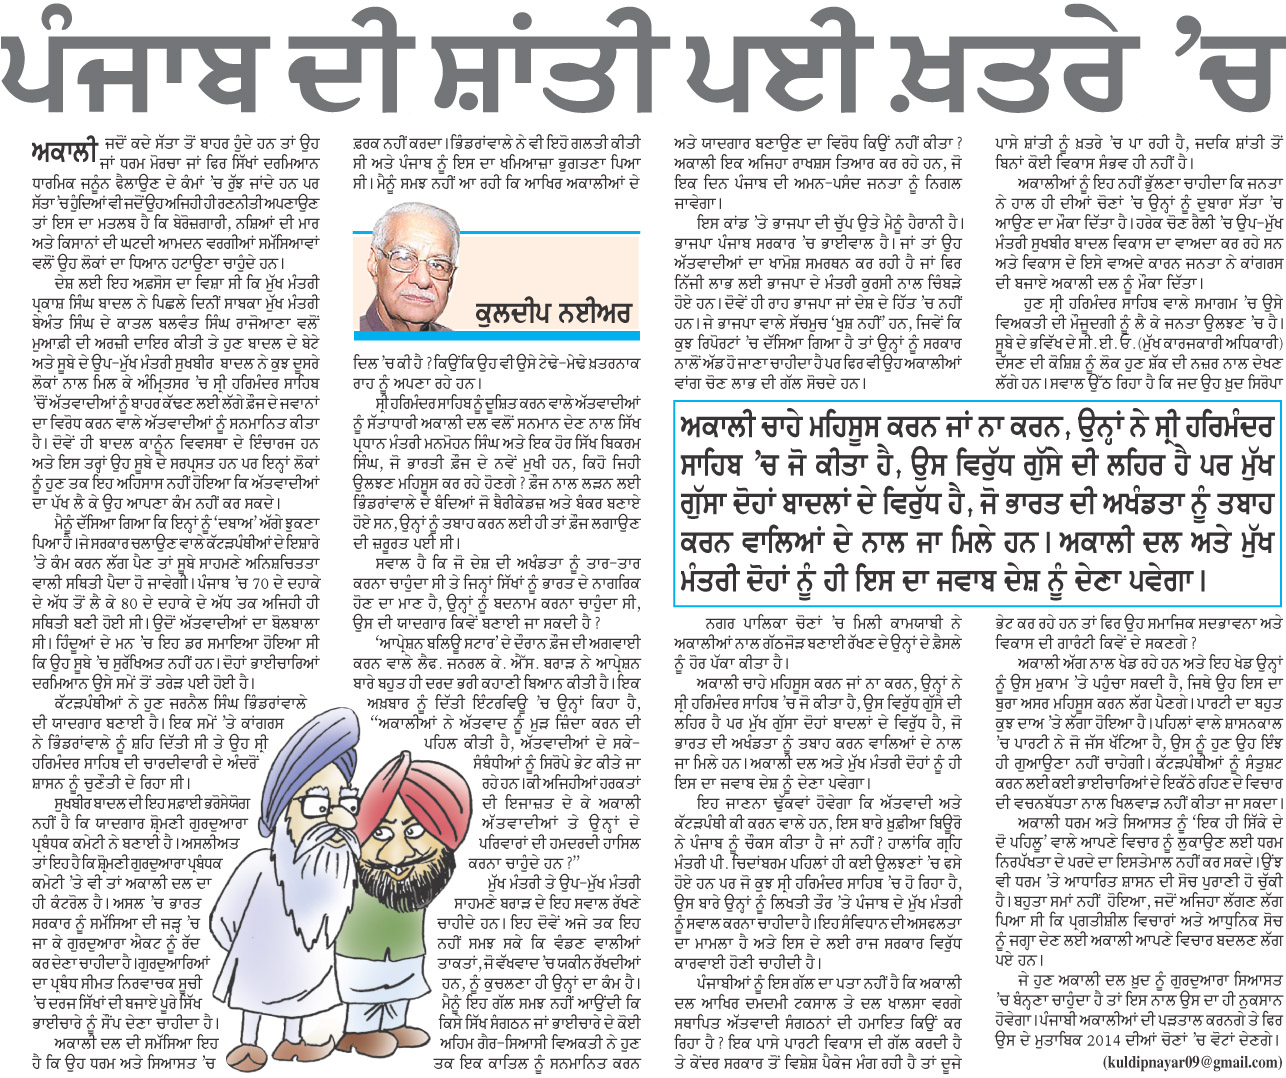 Kuldip Nayar's article opposing Sikh memorial for Saka Darbar Sahib (1984). This article was published in Jag Bani newspaper on June 20, 2012. Click on Image for Larger view.